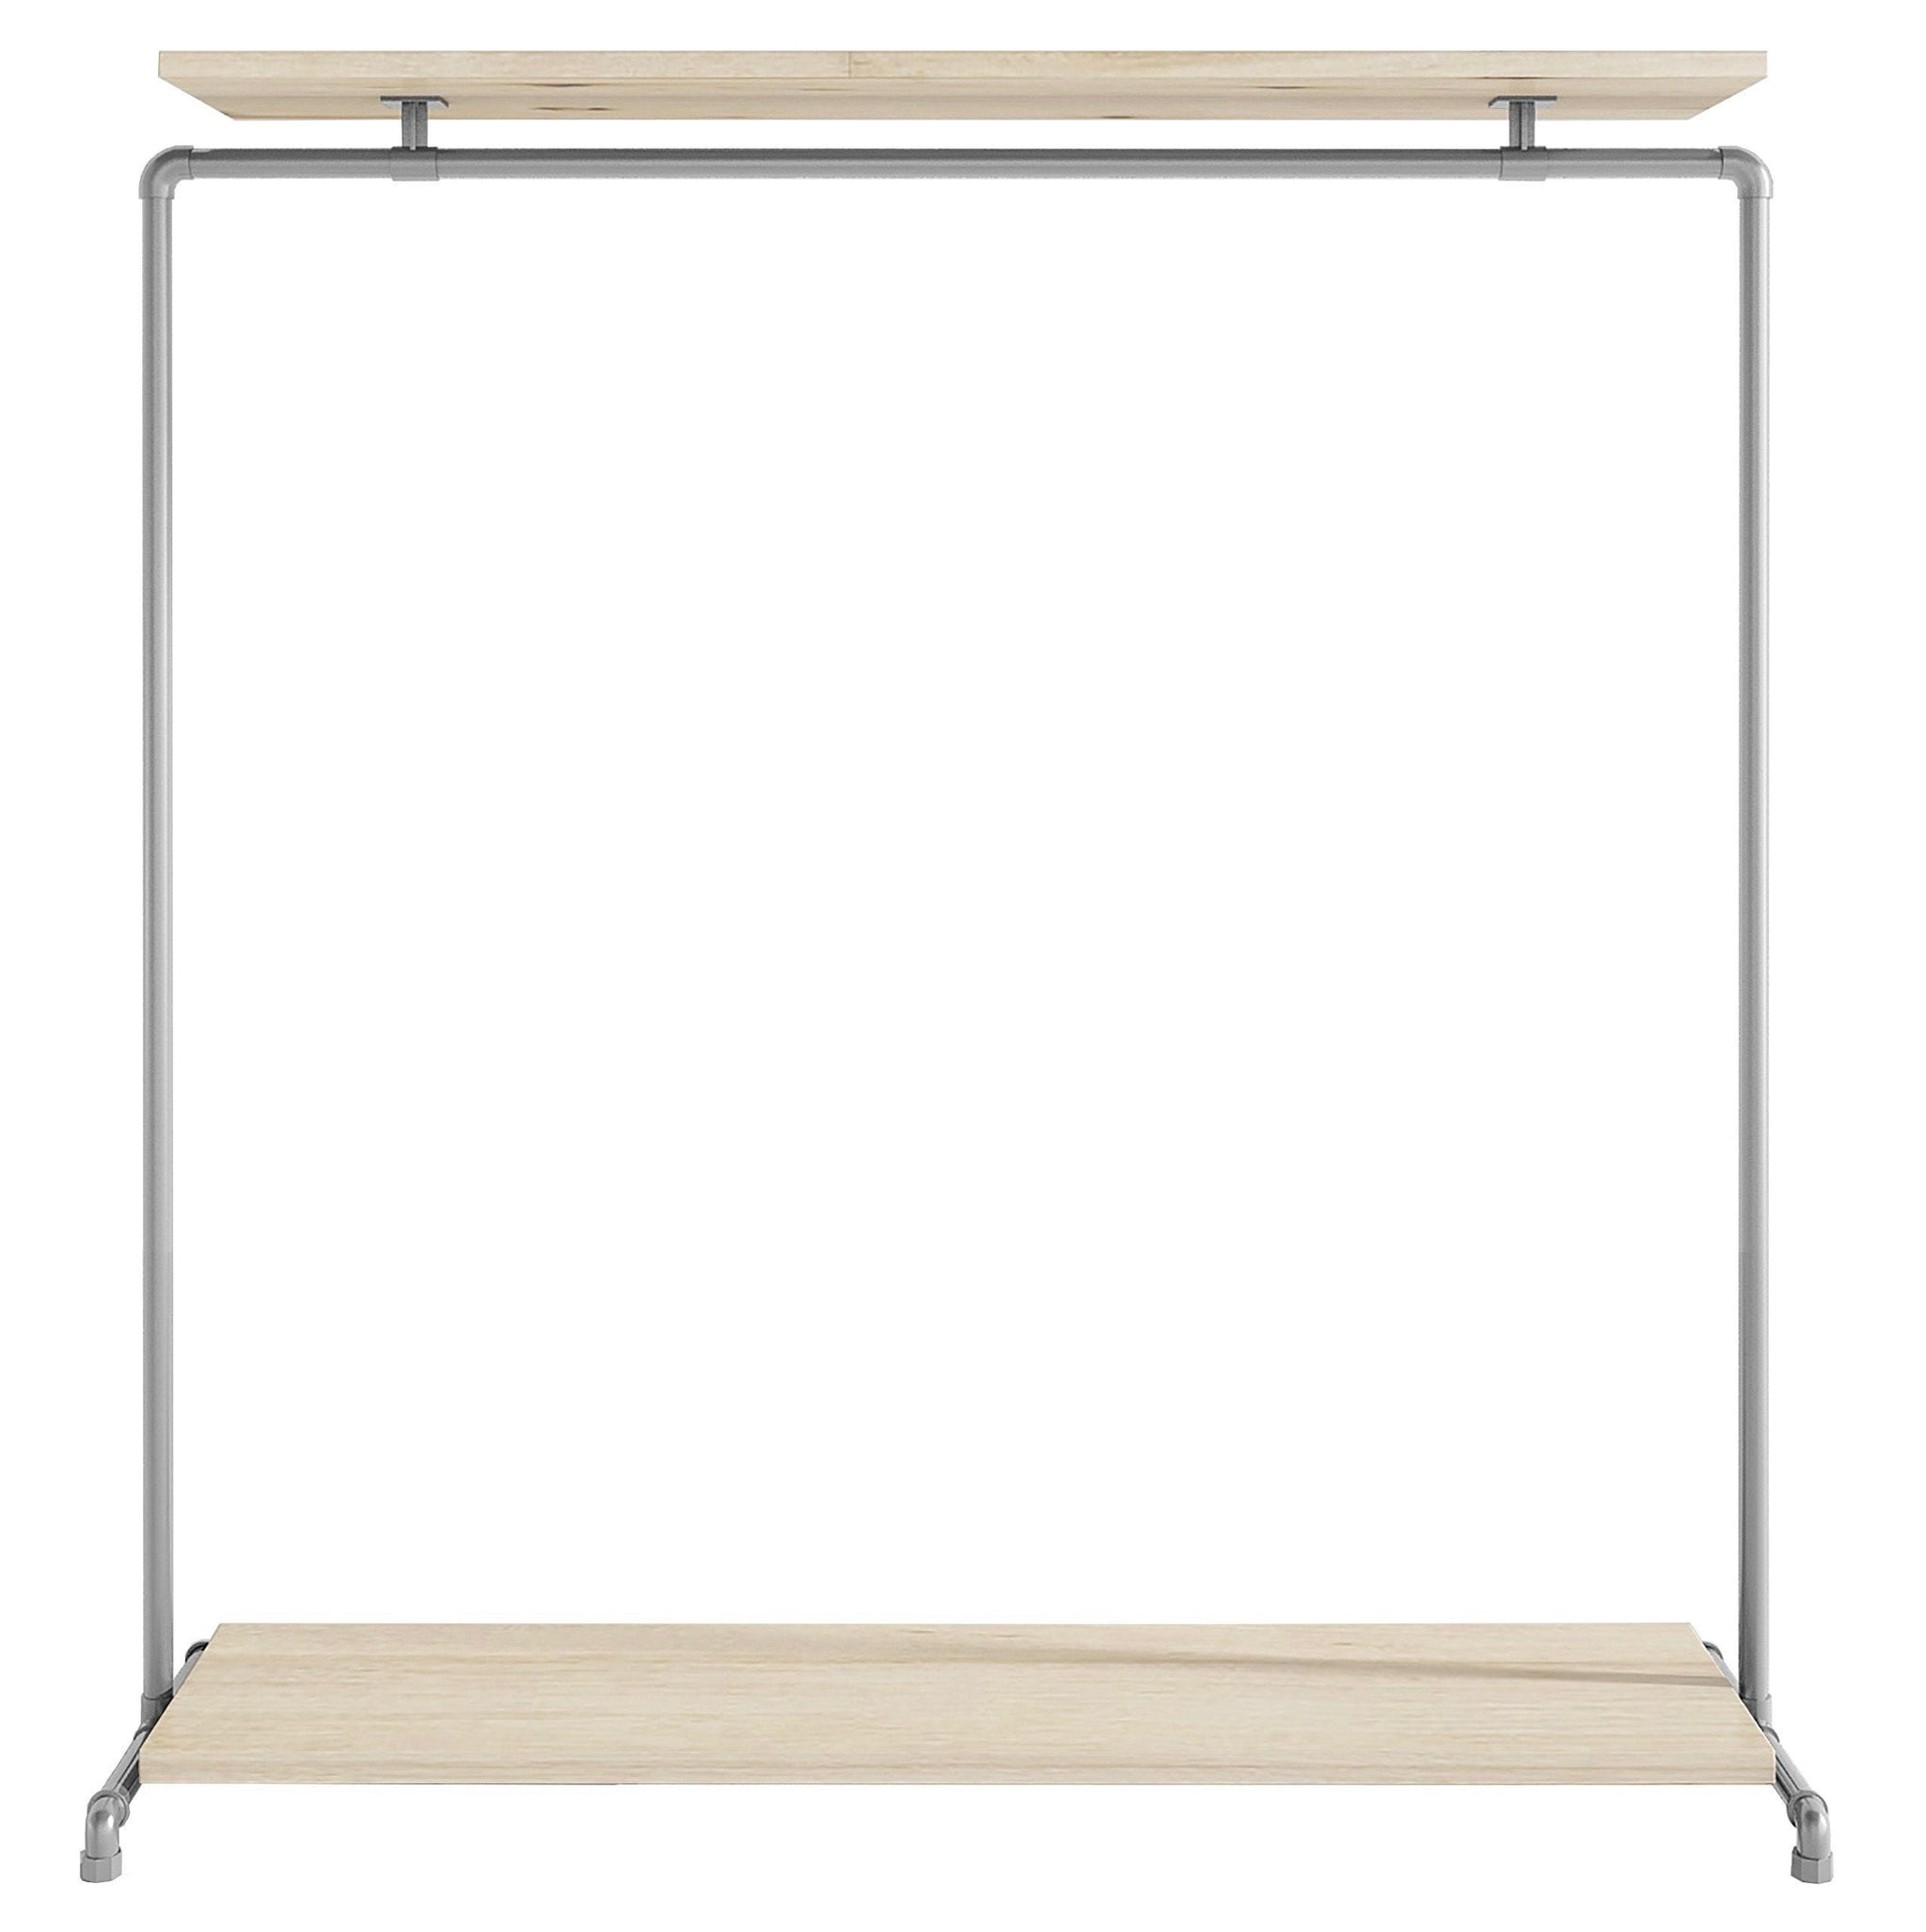 Ziito Clothes Rail C1 / 150 cm / Uden Wood Double Shelf Tøjstativ